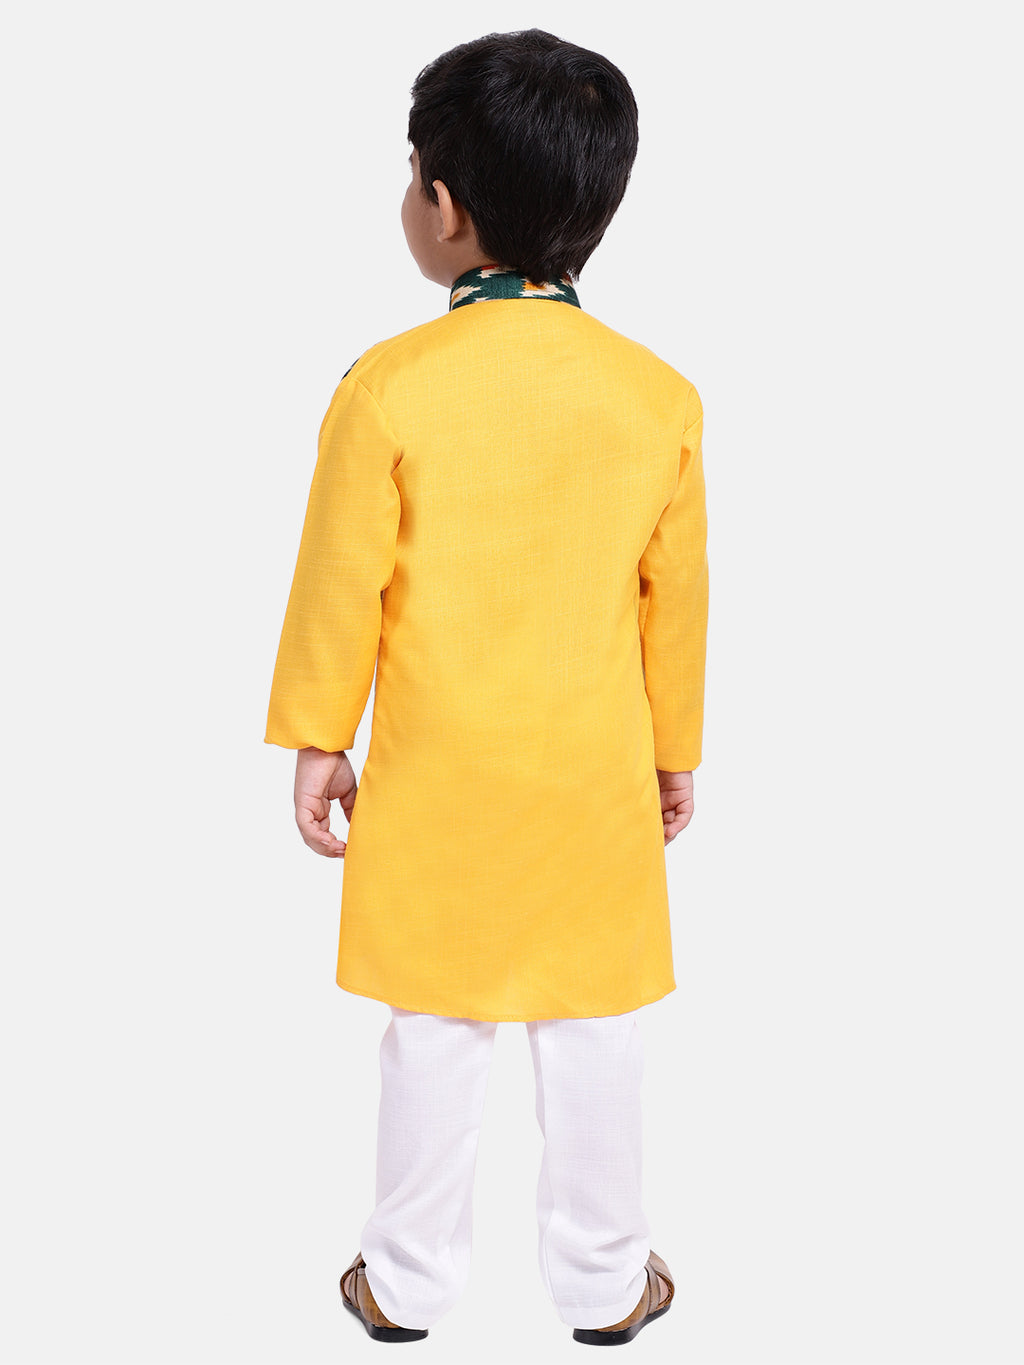 Attached Jacket Full Sleeve Kurta Pajama-Yellow